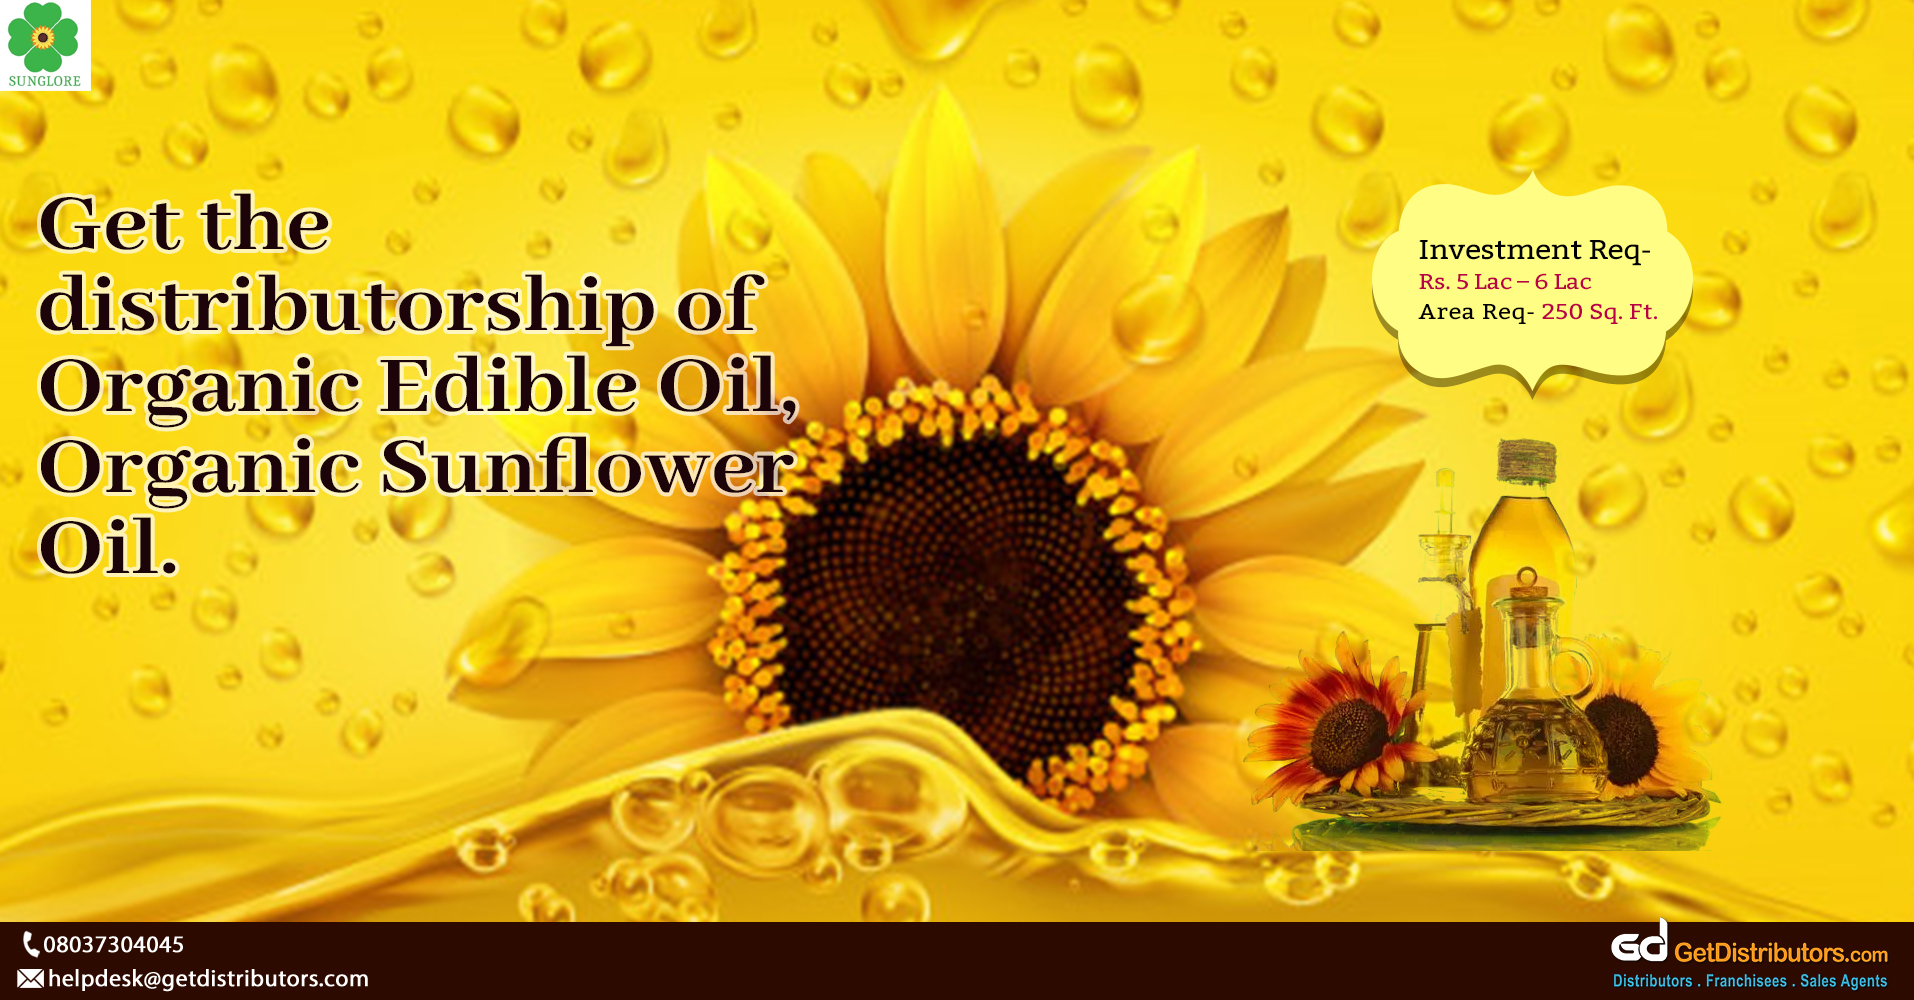 Healthy & nutritious edible organic oil for distribution